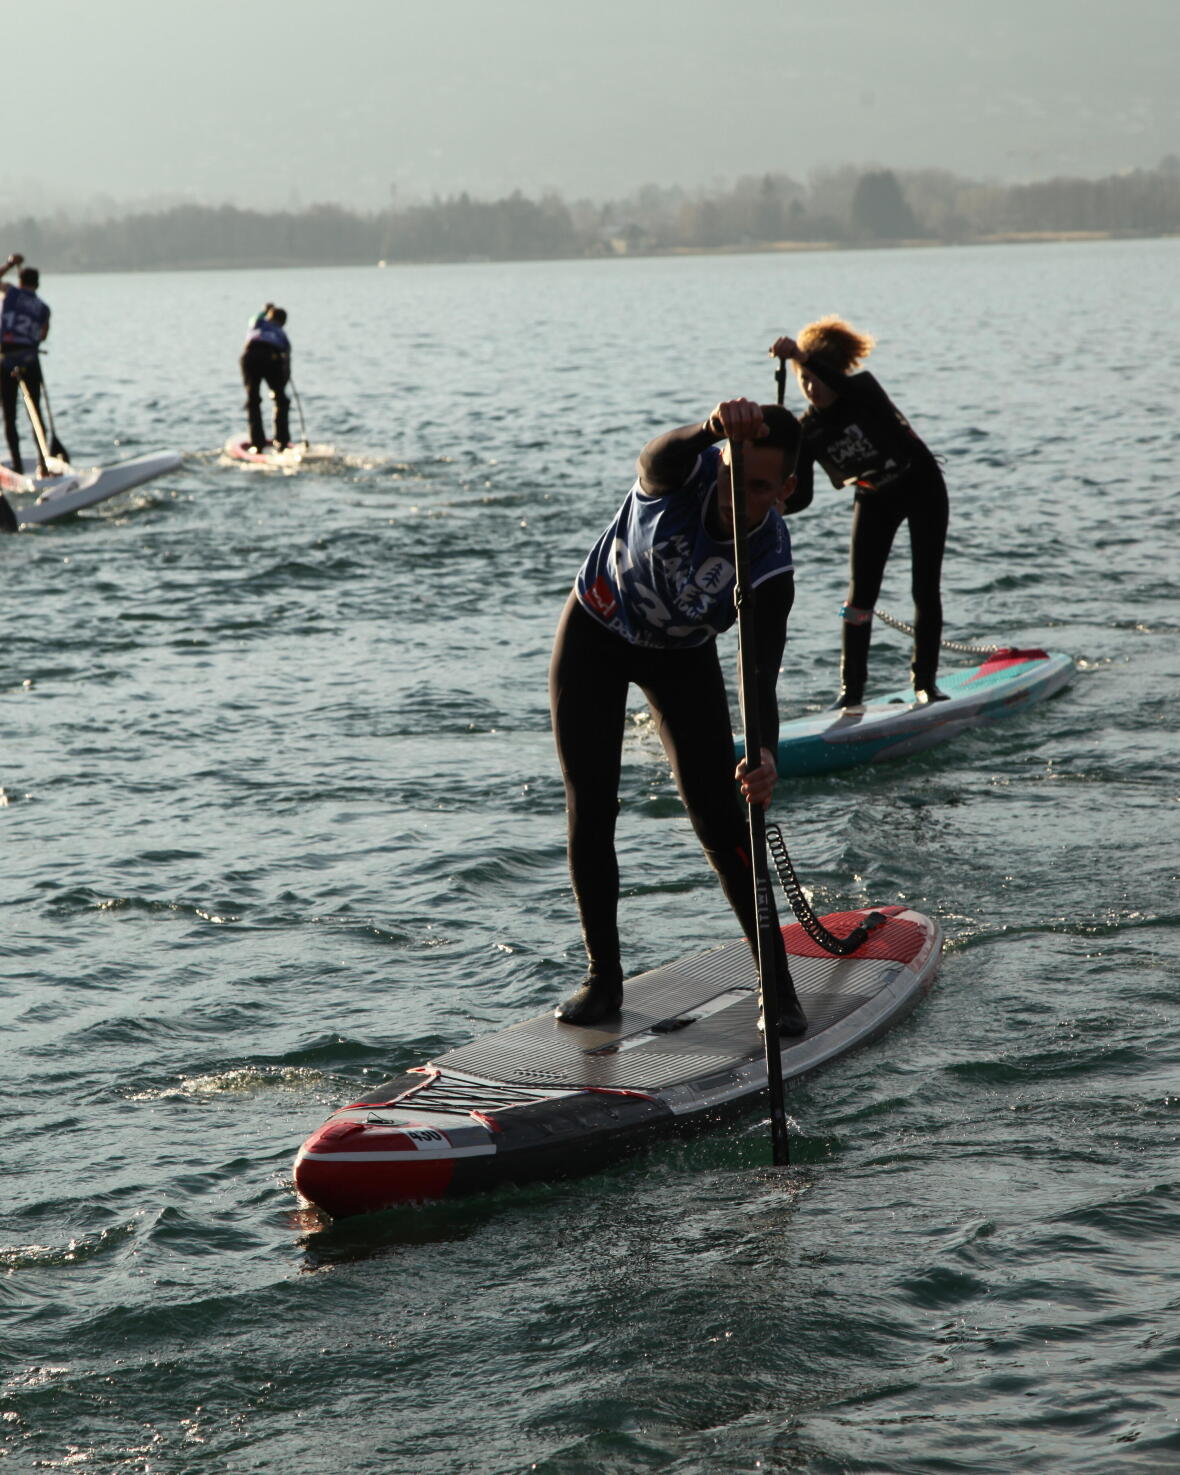 stand up paddle board race